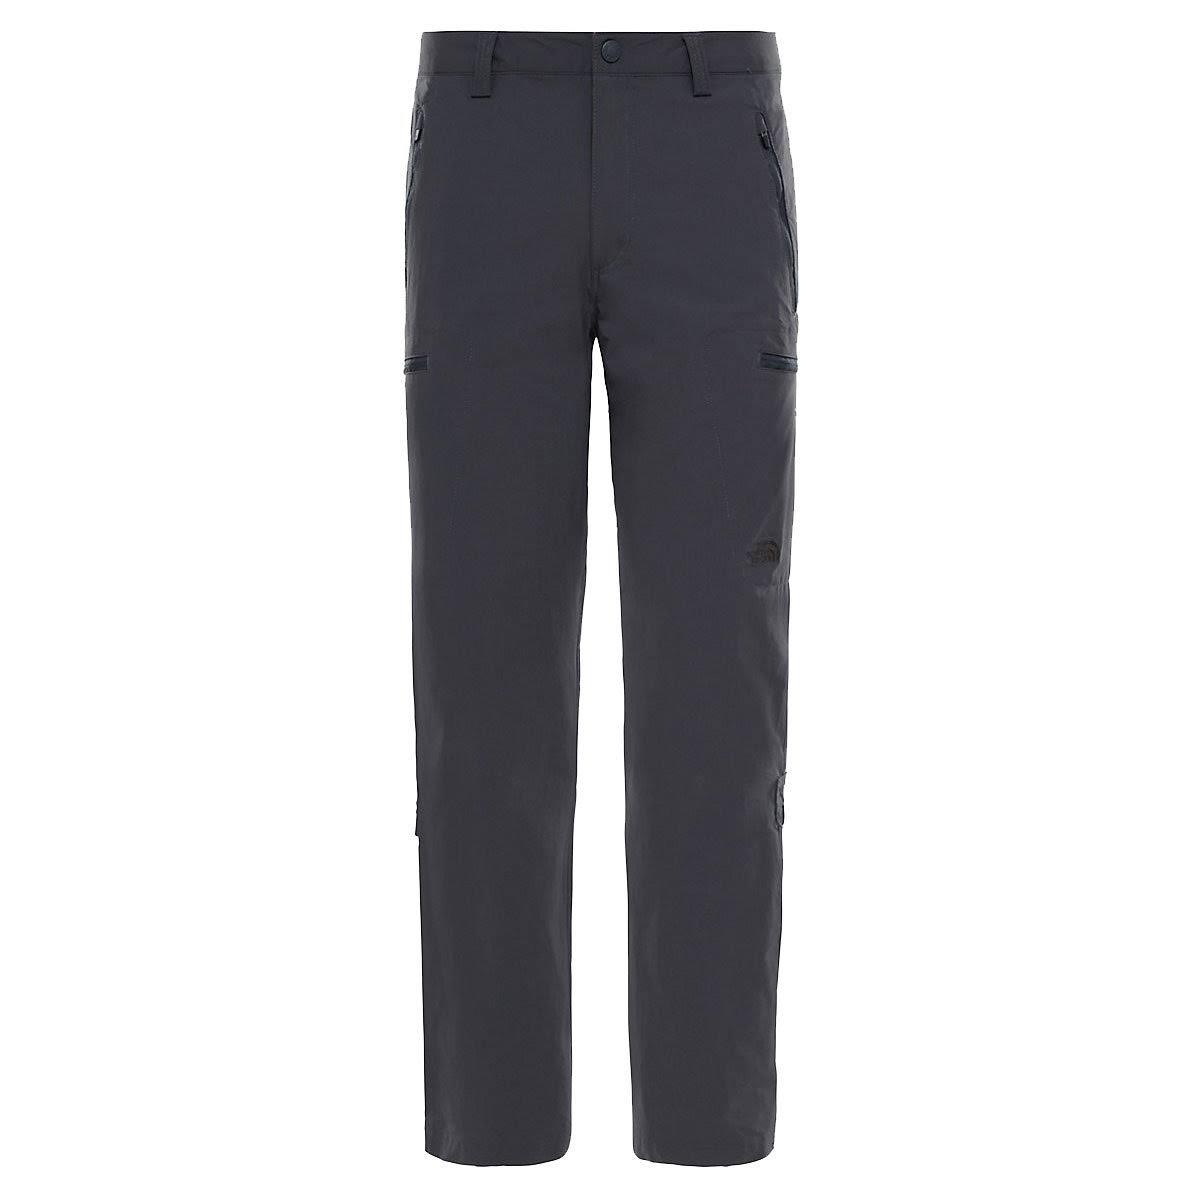 The North Face Men's Exploration Pants - Grey, 34